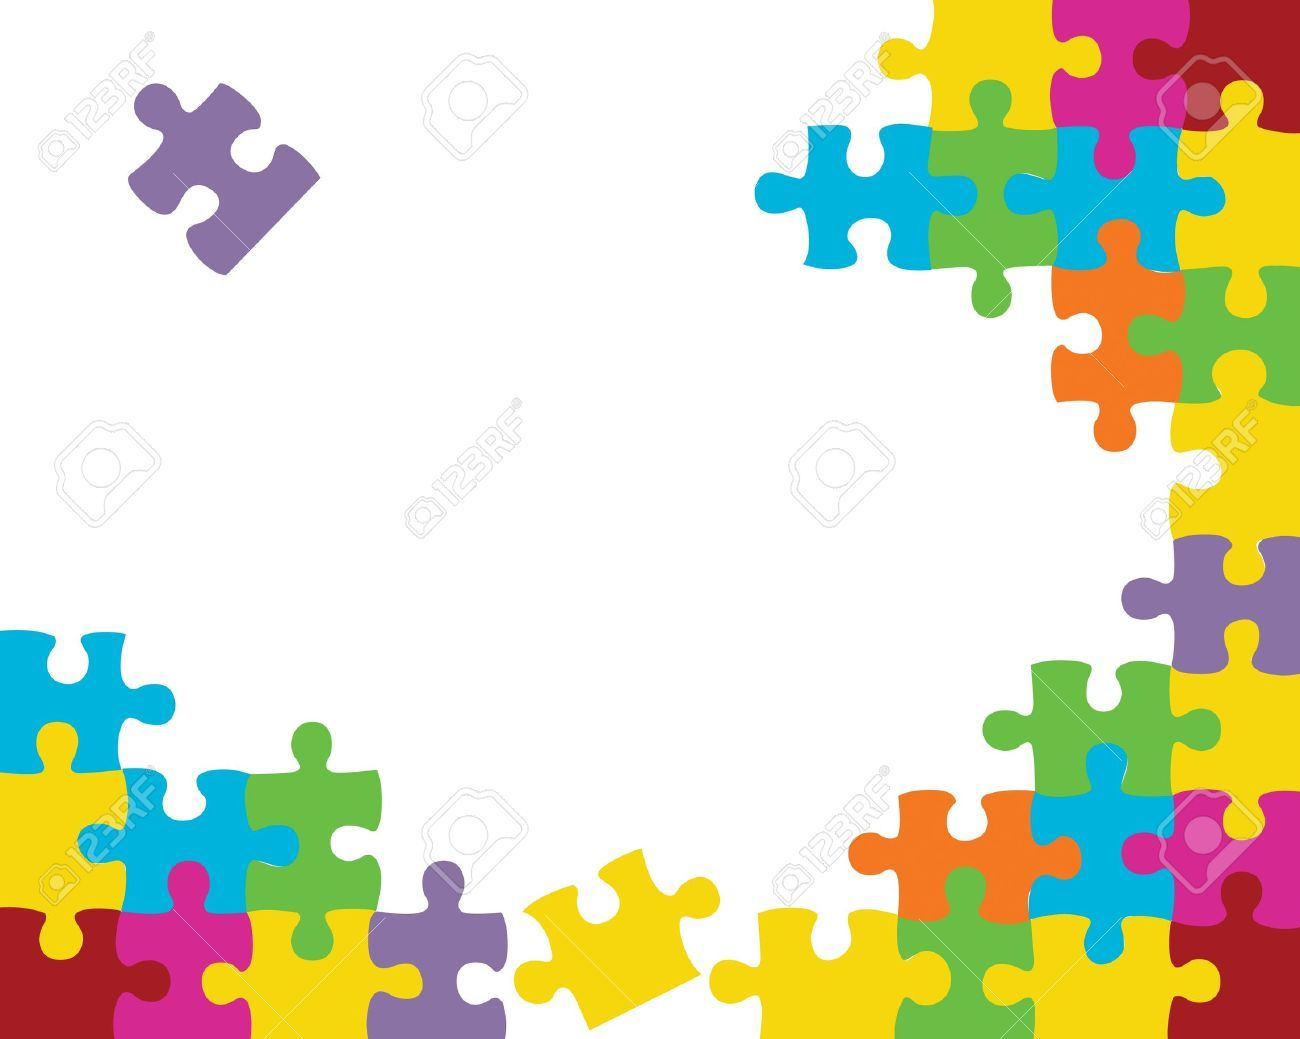 Puzzle jigsaw. Abstract background illustration periscopes